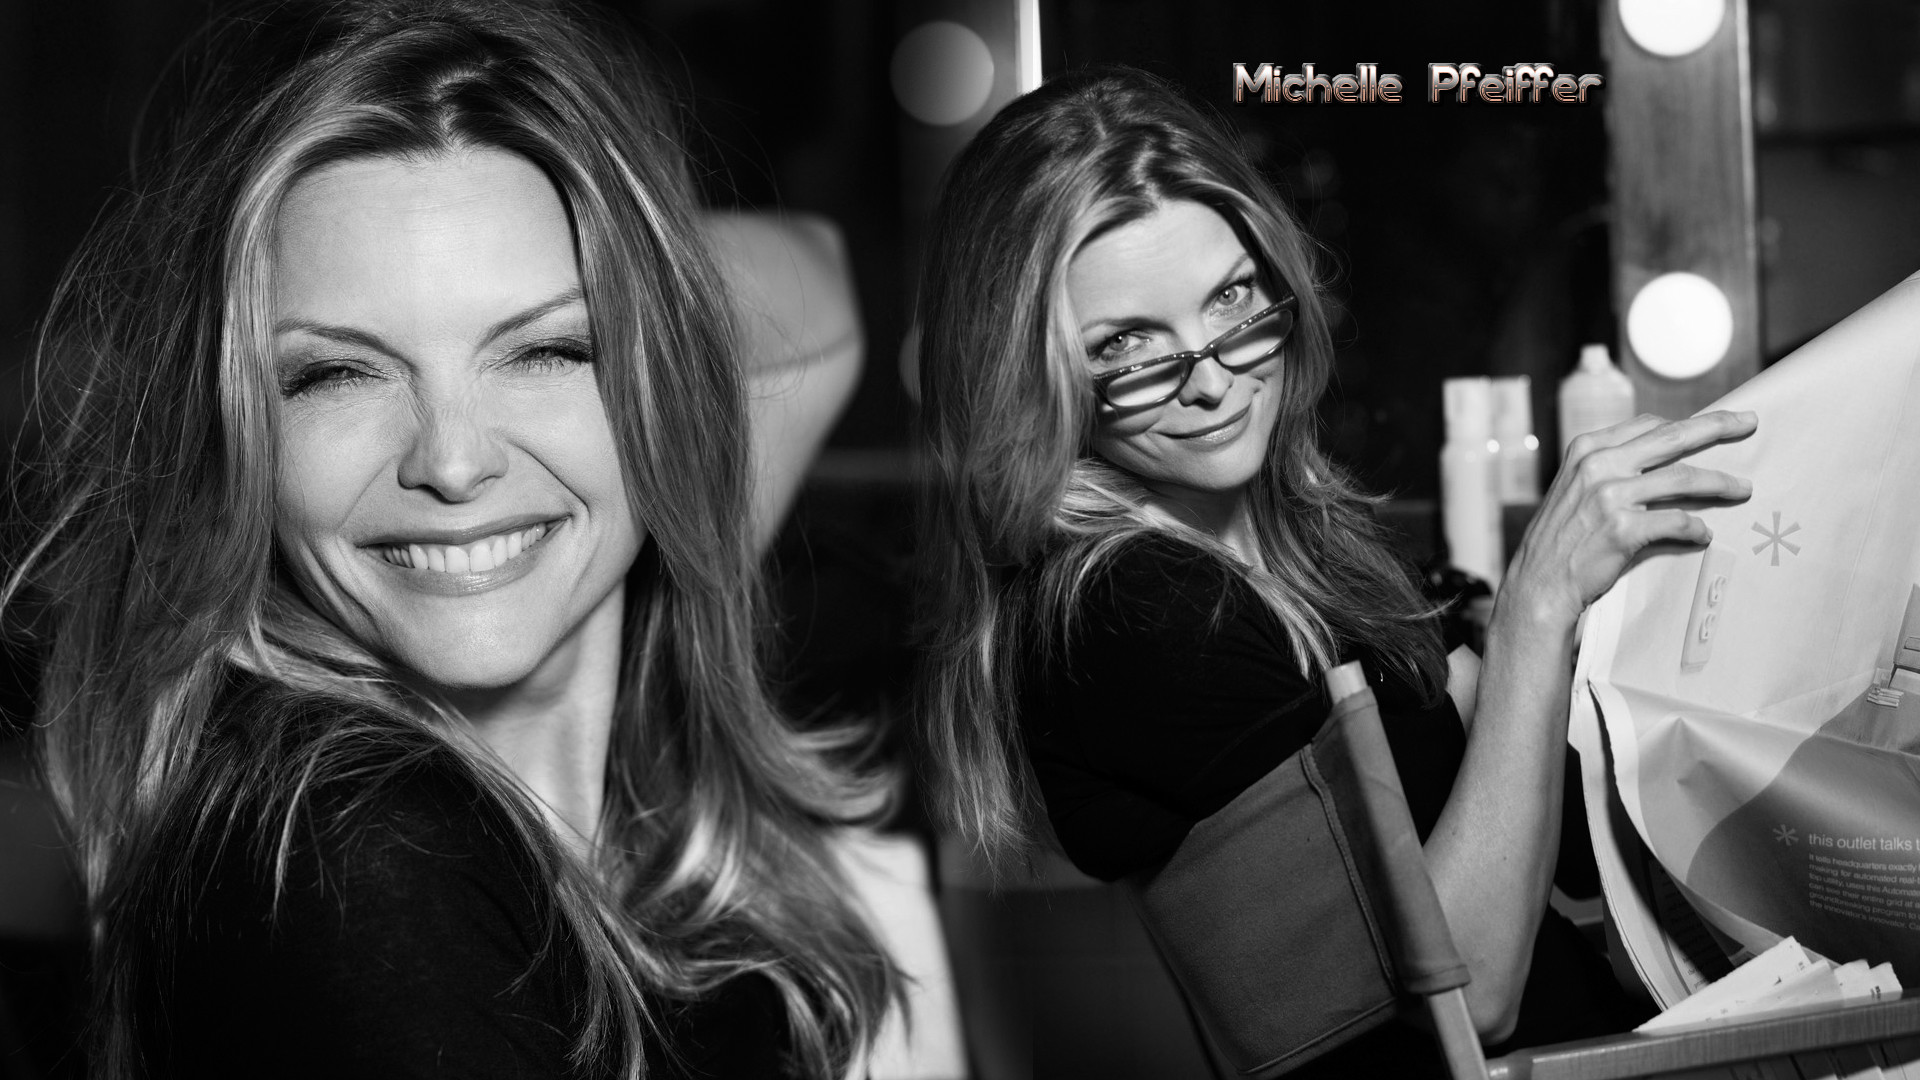 Res: 1920x1080, Michelle Pfeiffer HD Wallpapers